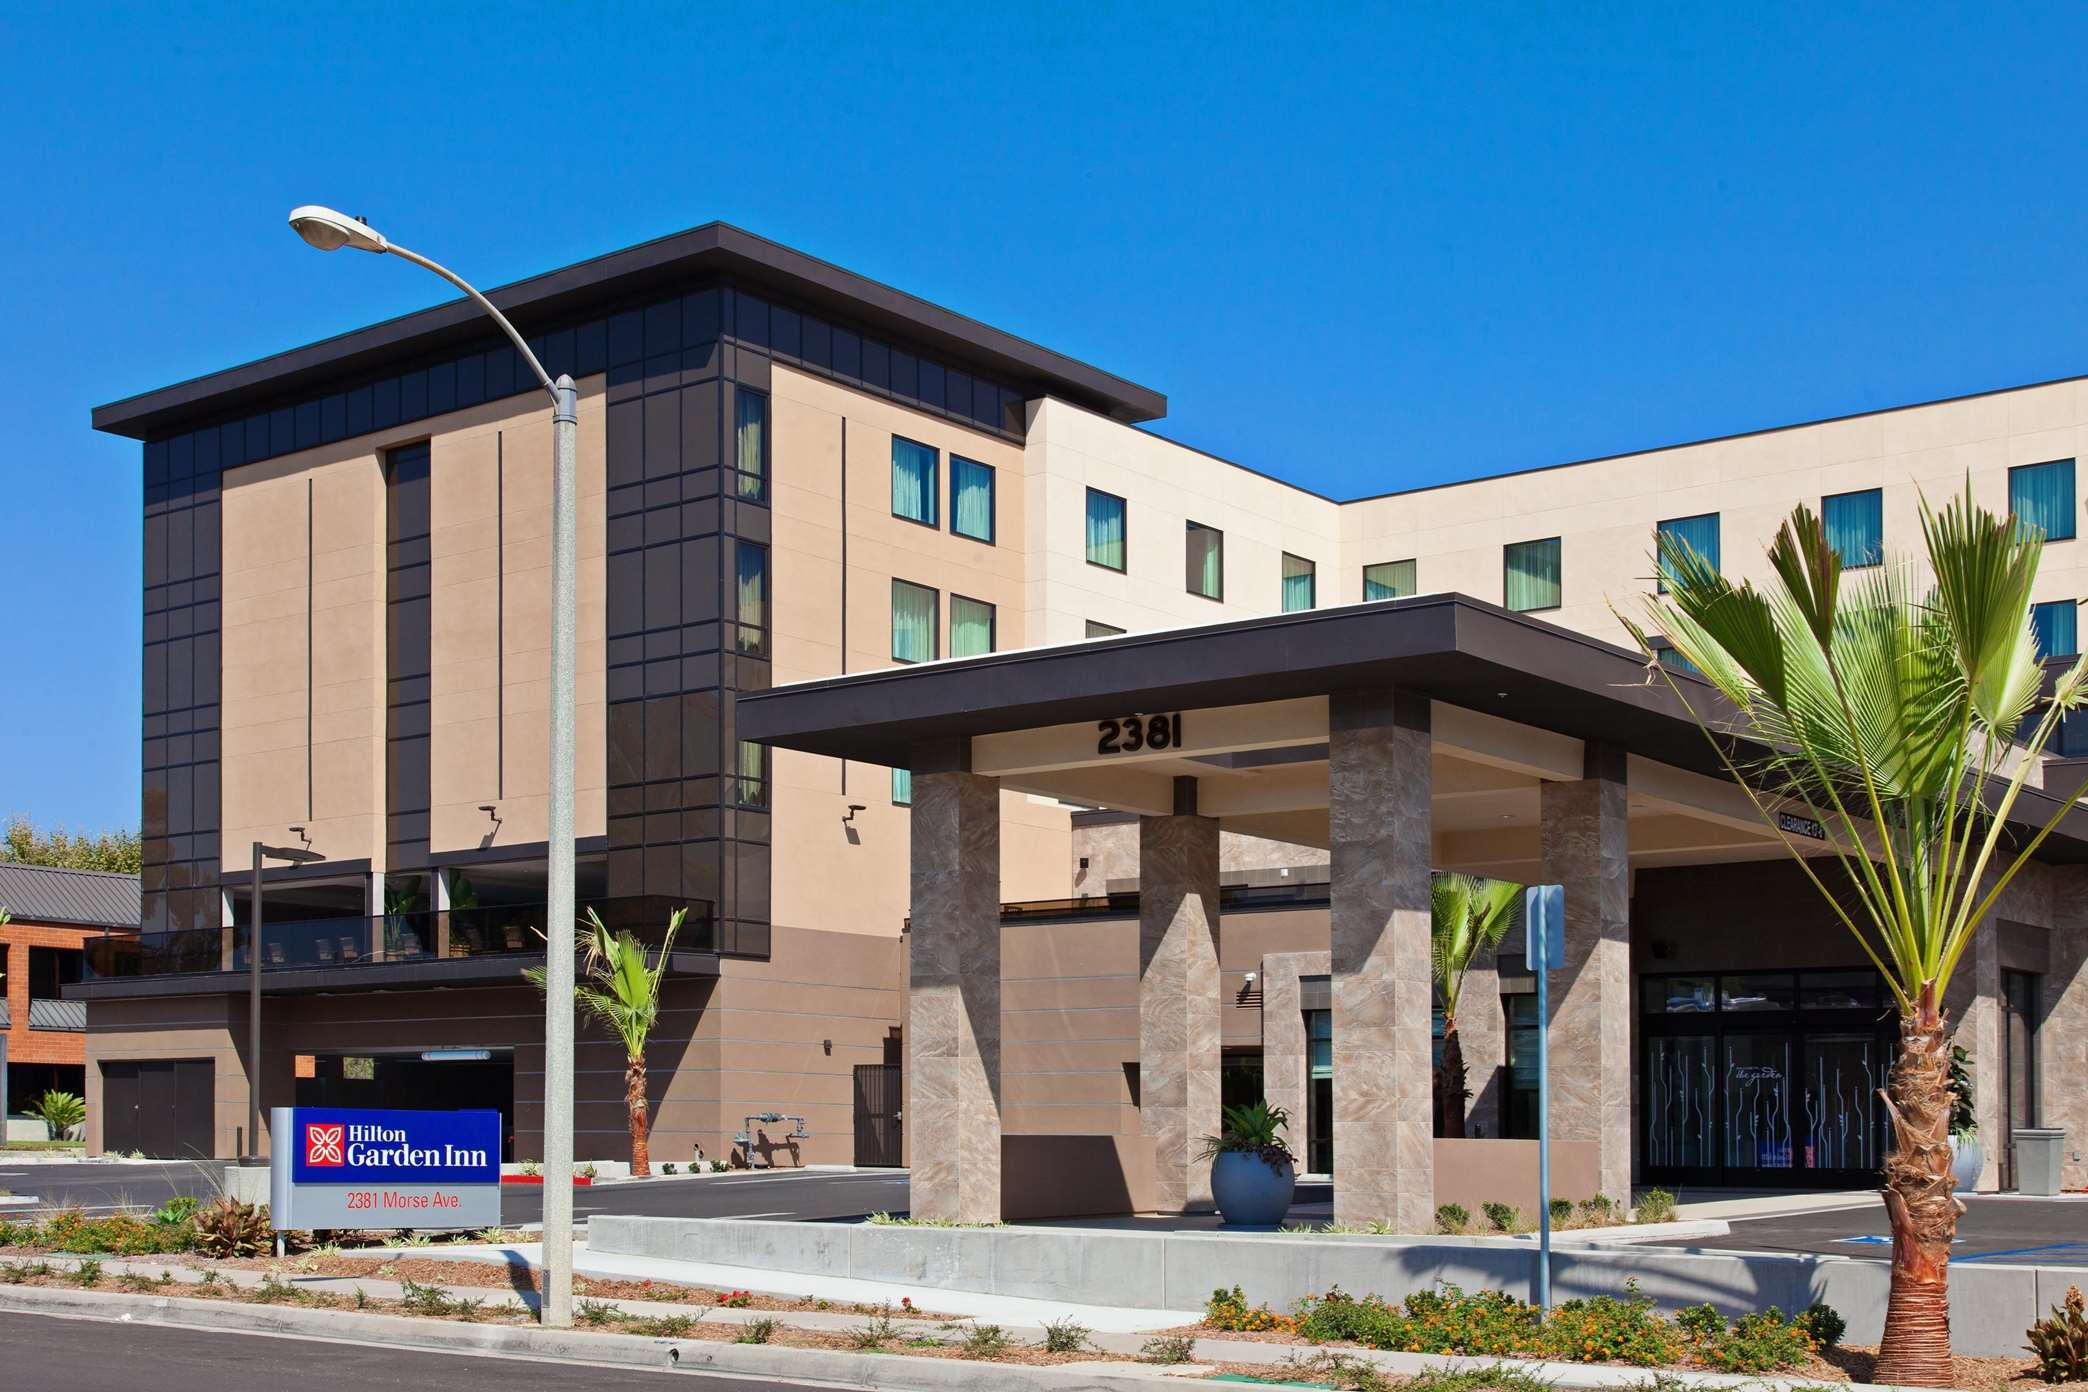 Hilton Garden Inn Irvine/Orange County Airport image 1